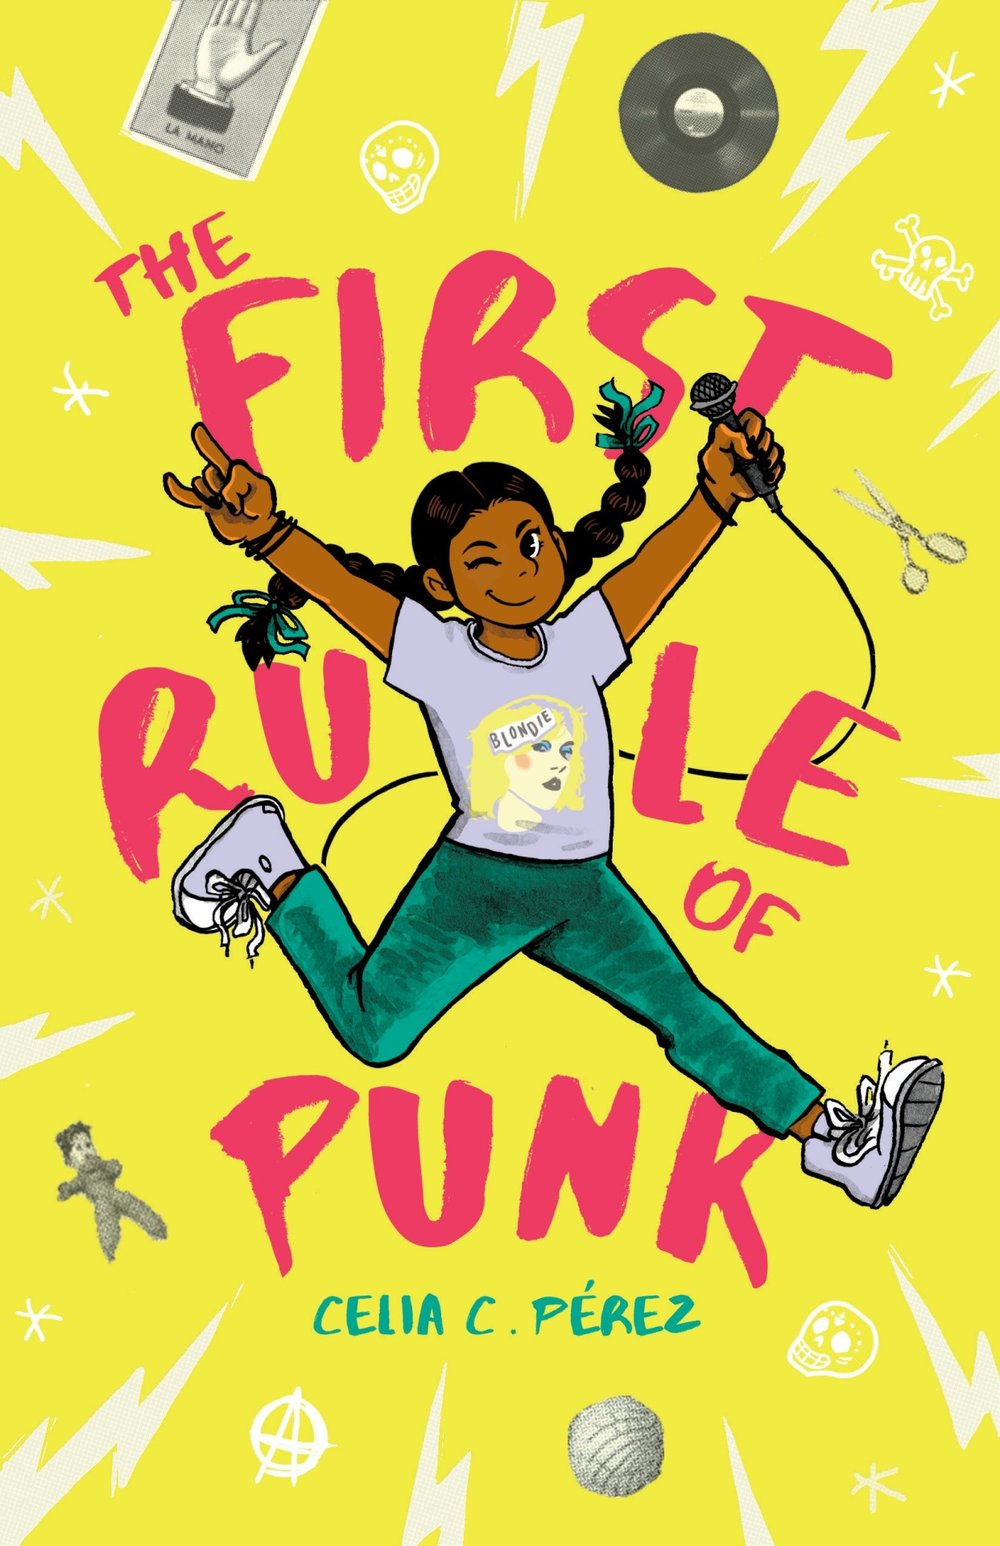 The First Rule of Punk, by Celia C. Pérez